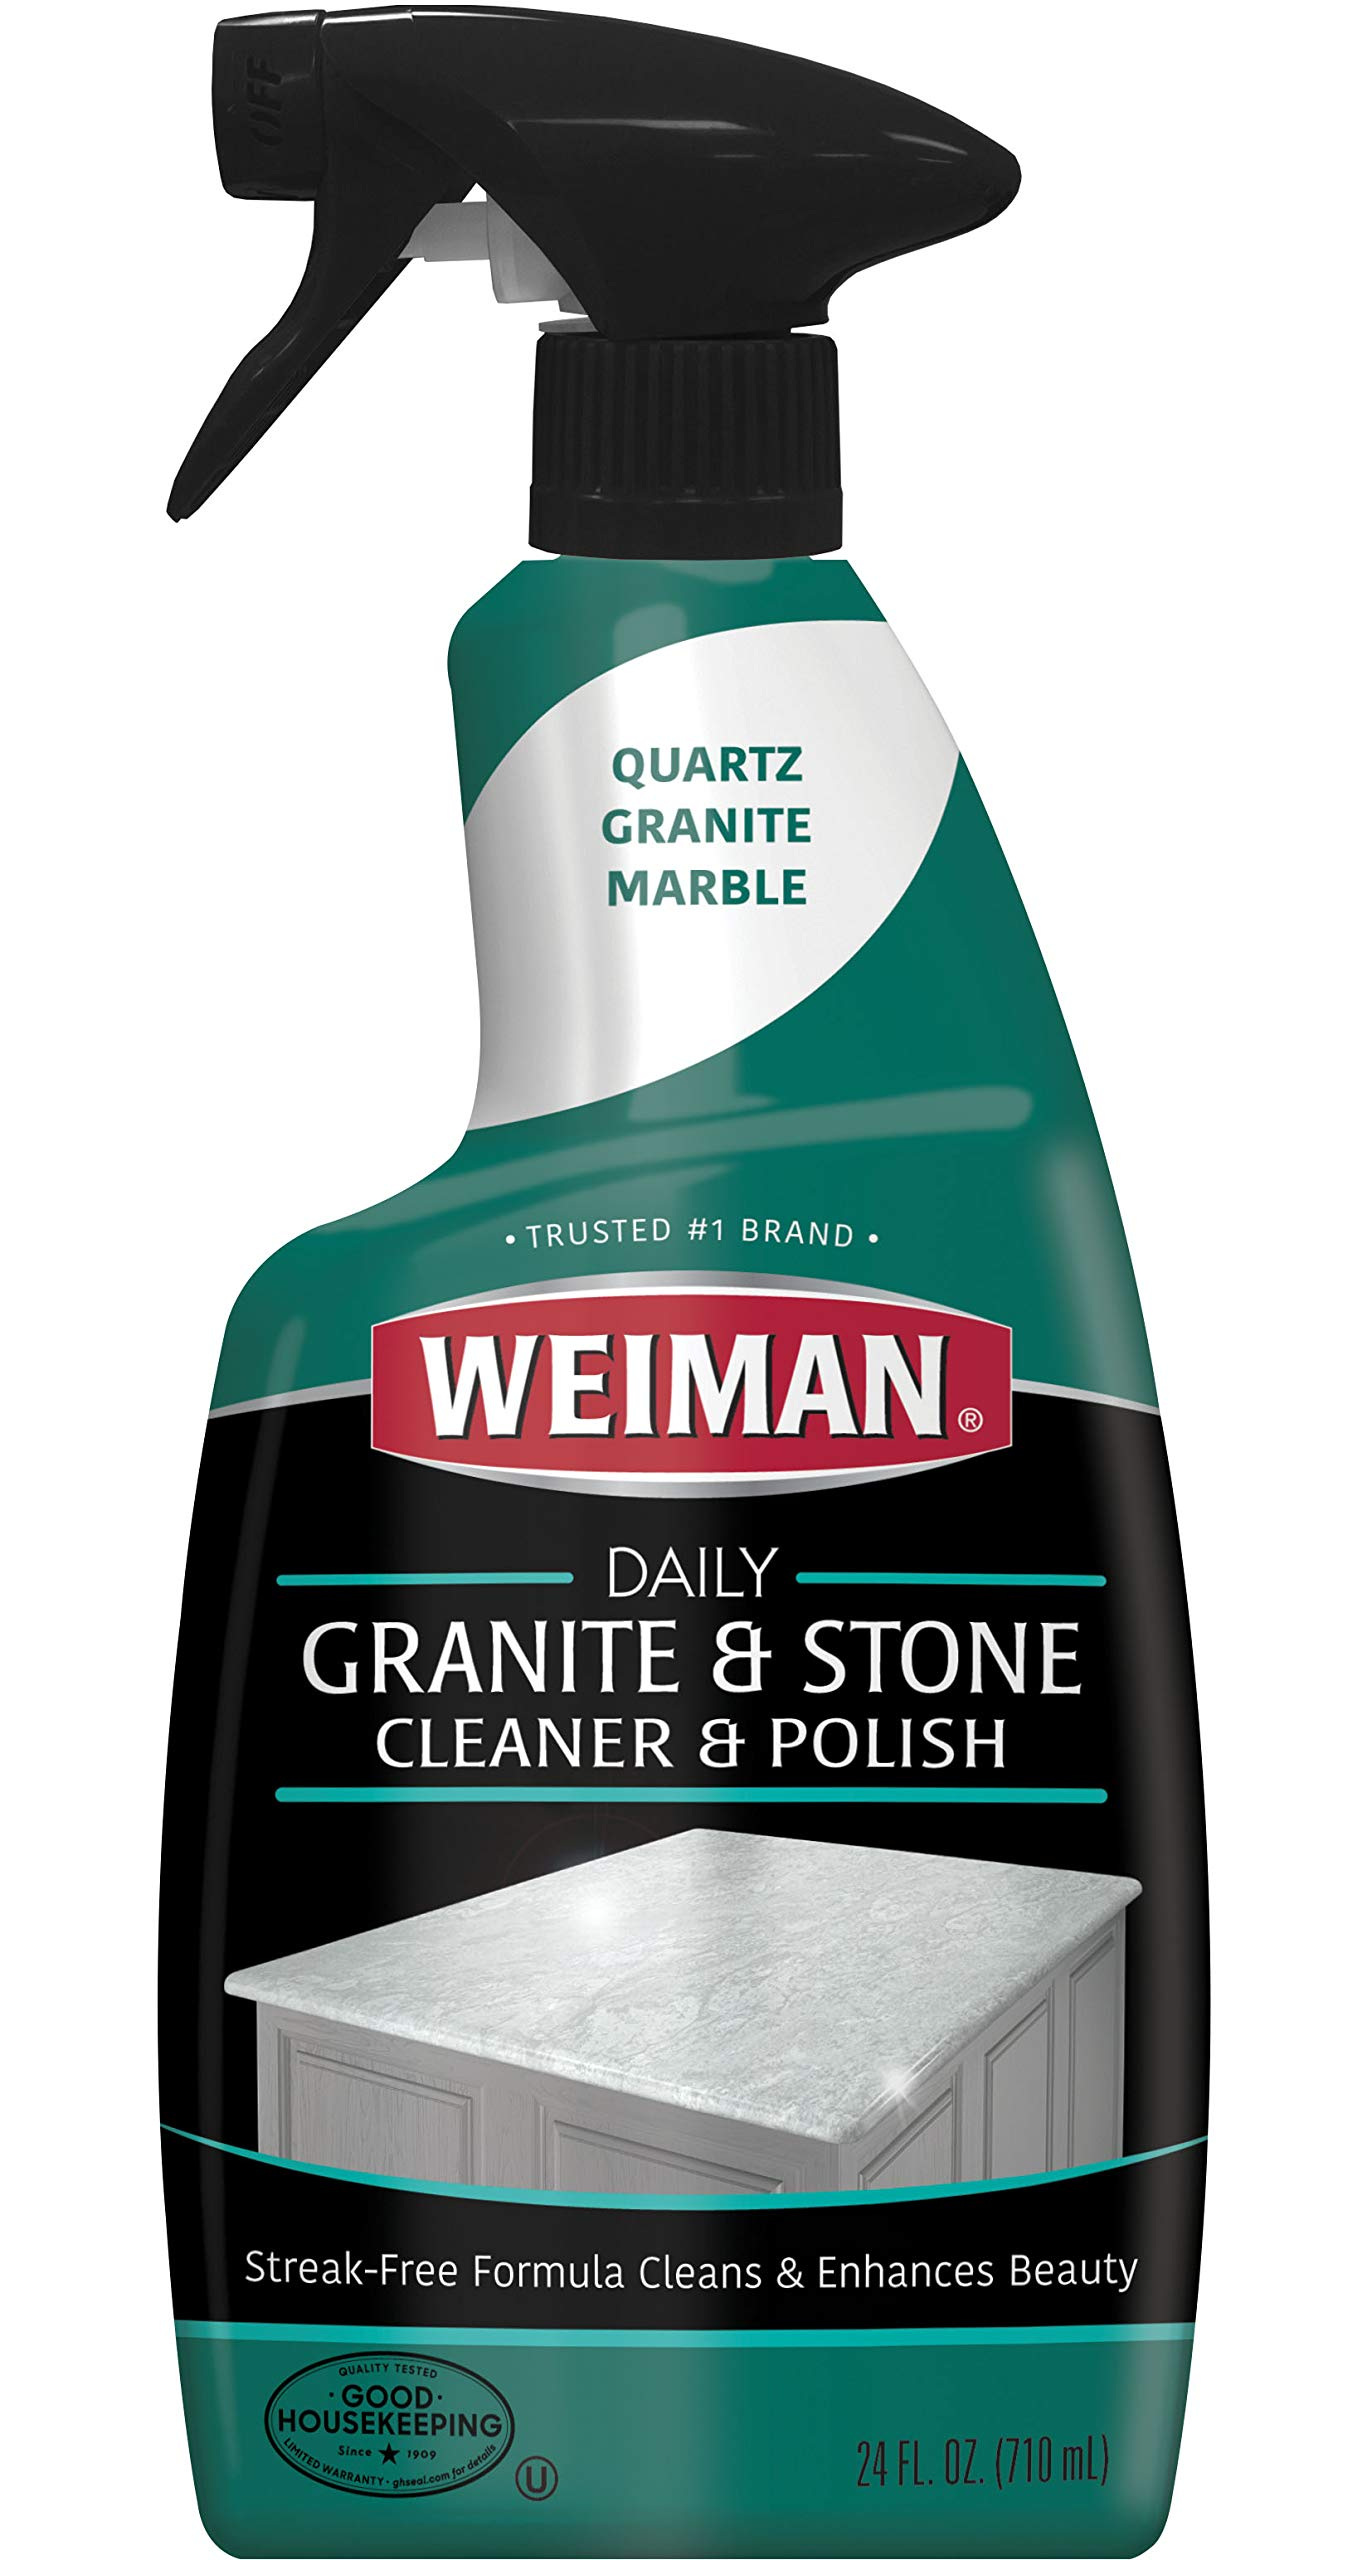 Weiman Granite Cleaner and Polish for Daily Use, Streak-Free Formula for Countertops, Marble, Quartz, Laminate, and Tile (24 Ounce)